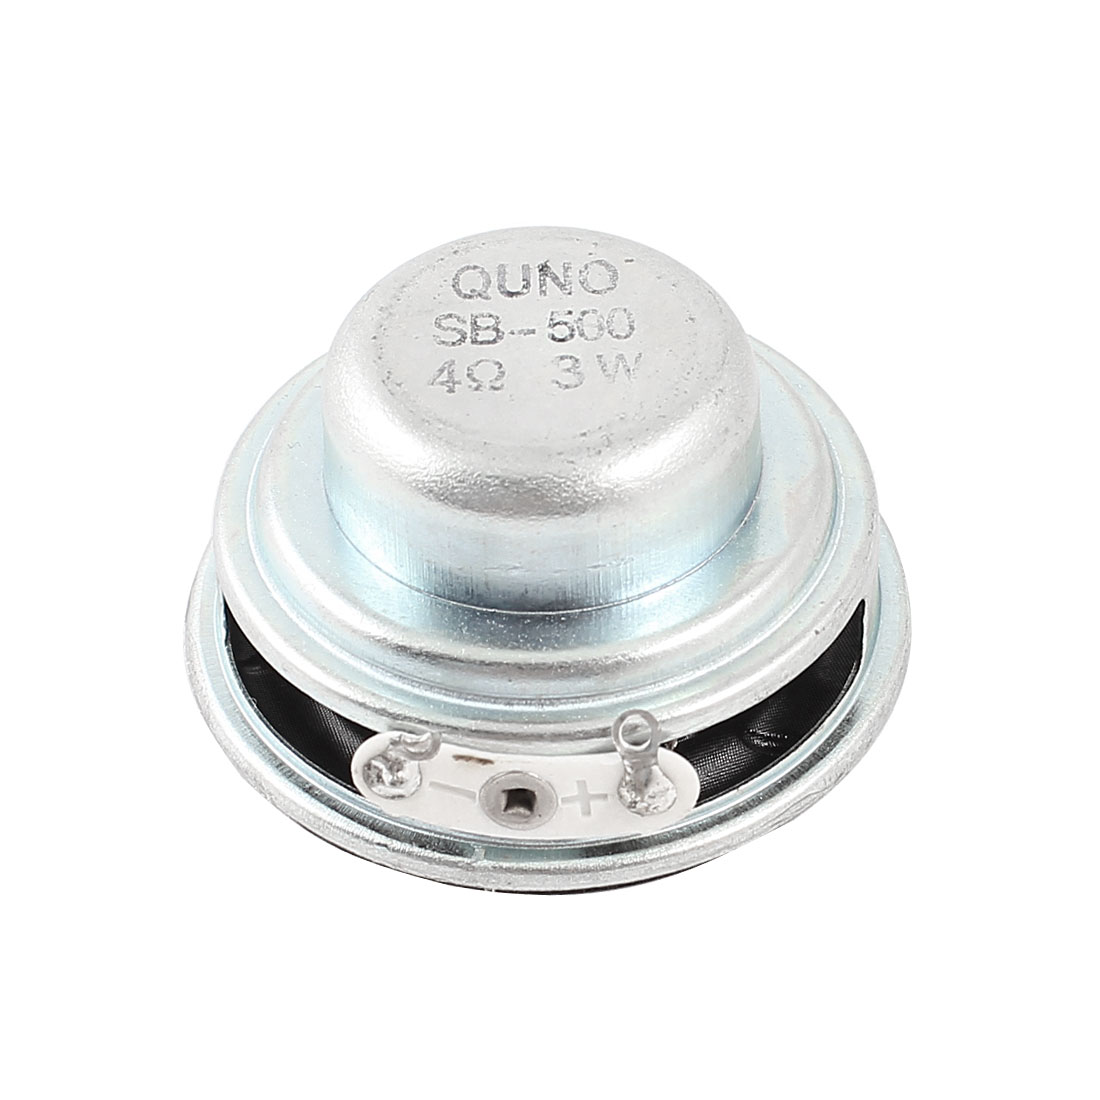 3W 4 Ohm Metal Housing Round External Magnet Speaker Loudspeaker